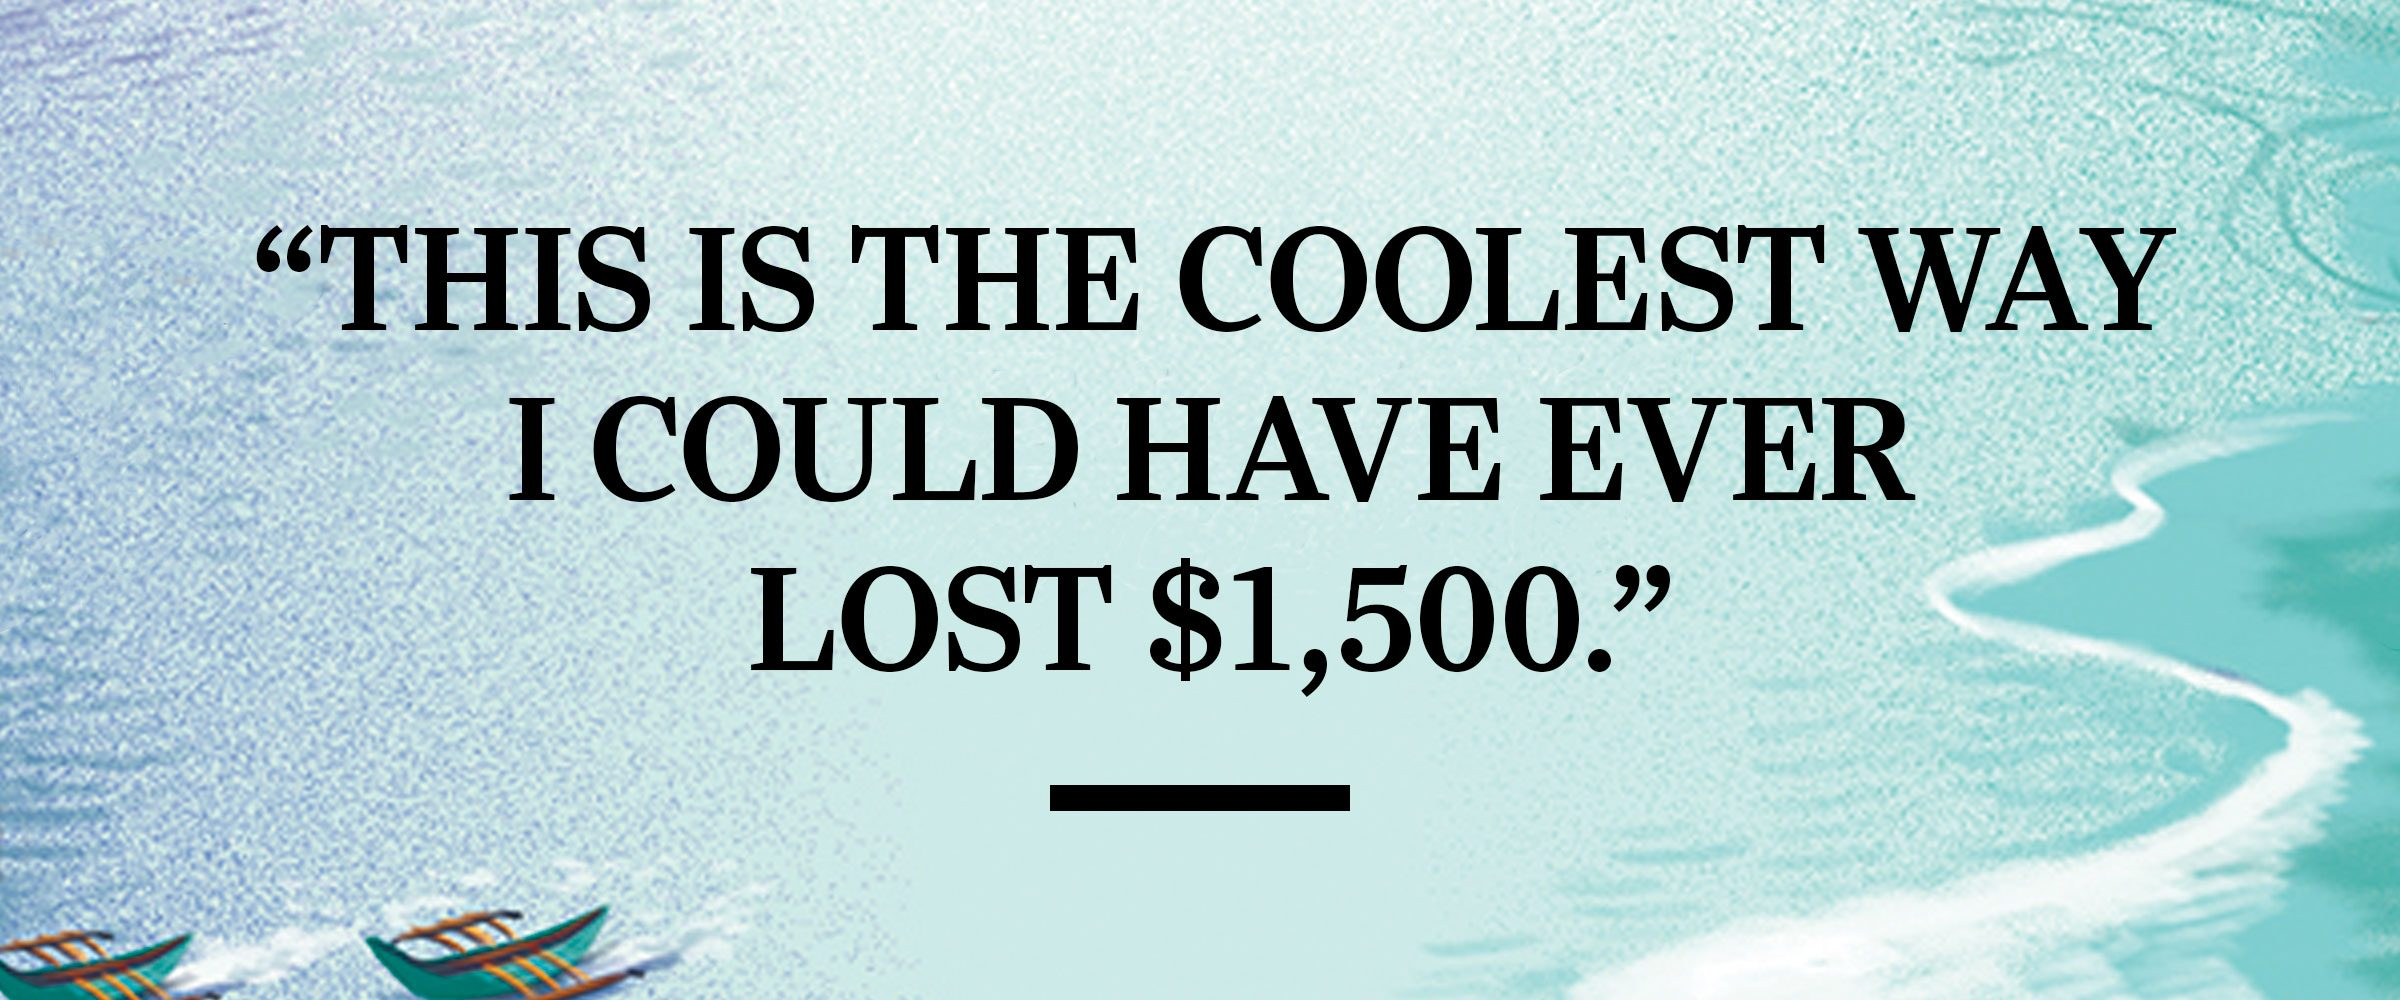 """text: """"This is the coolest way I could have ever lost $1,500."""""""